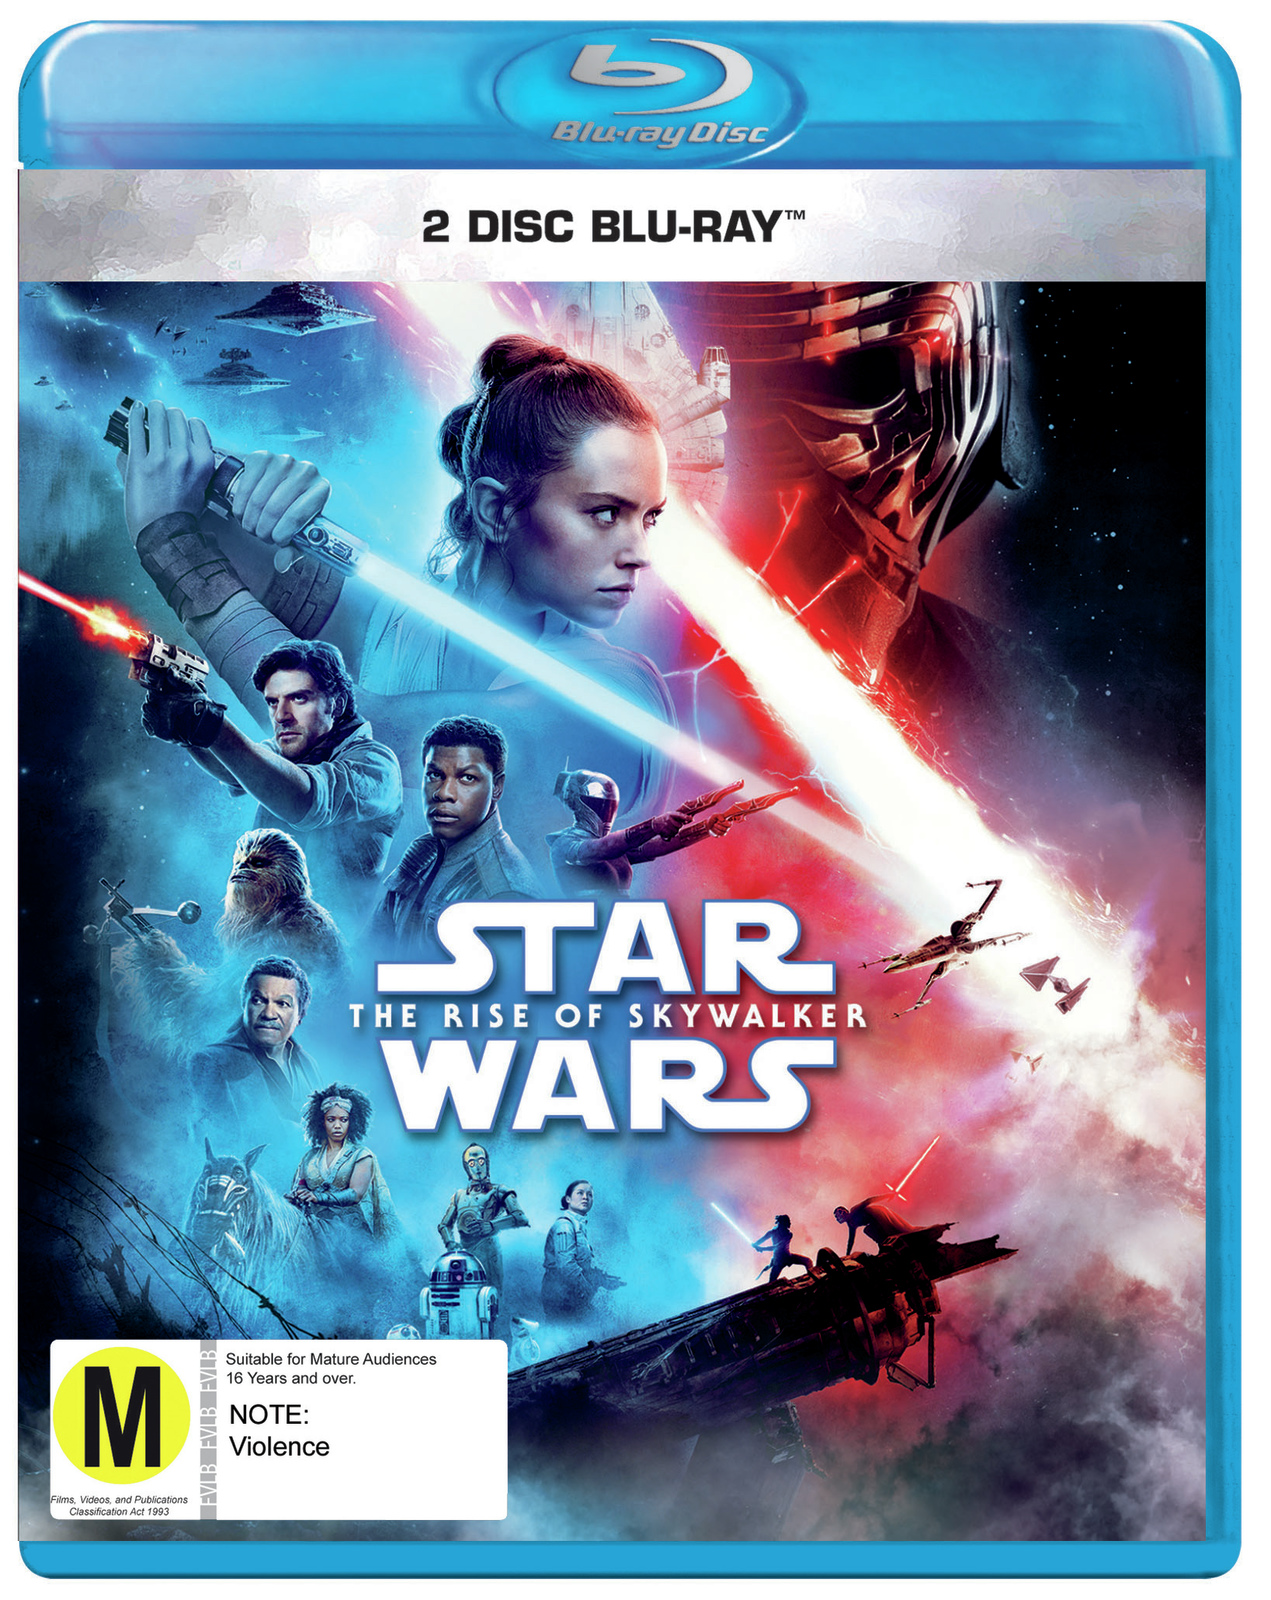 Star Wars: The Rise of Skywalker on Blu-ray image